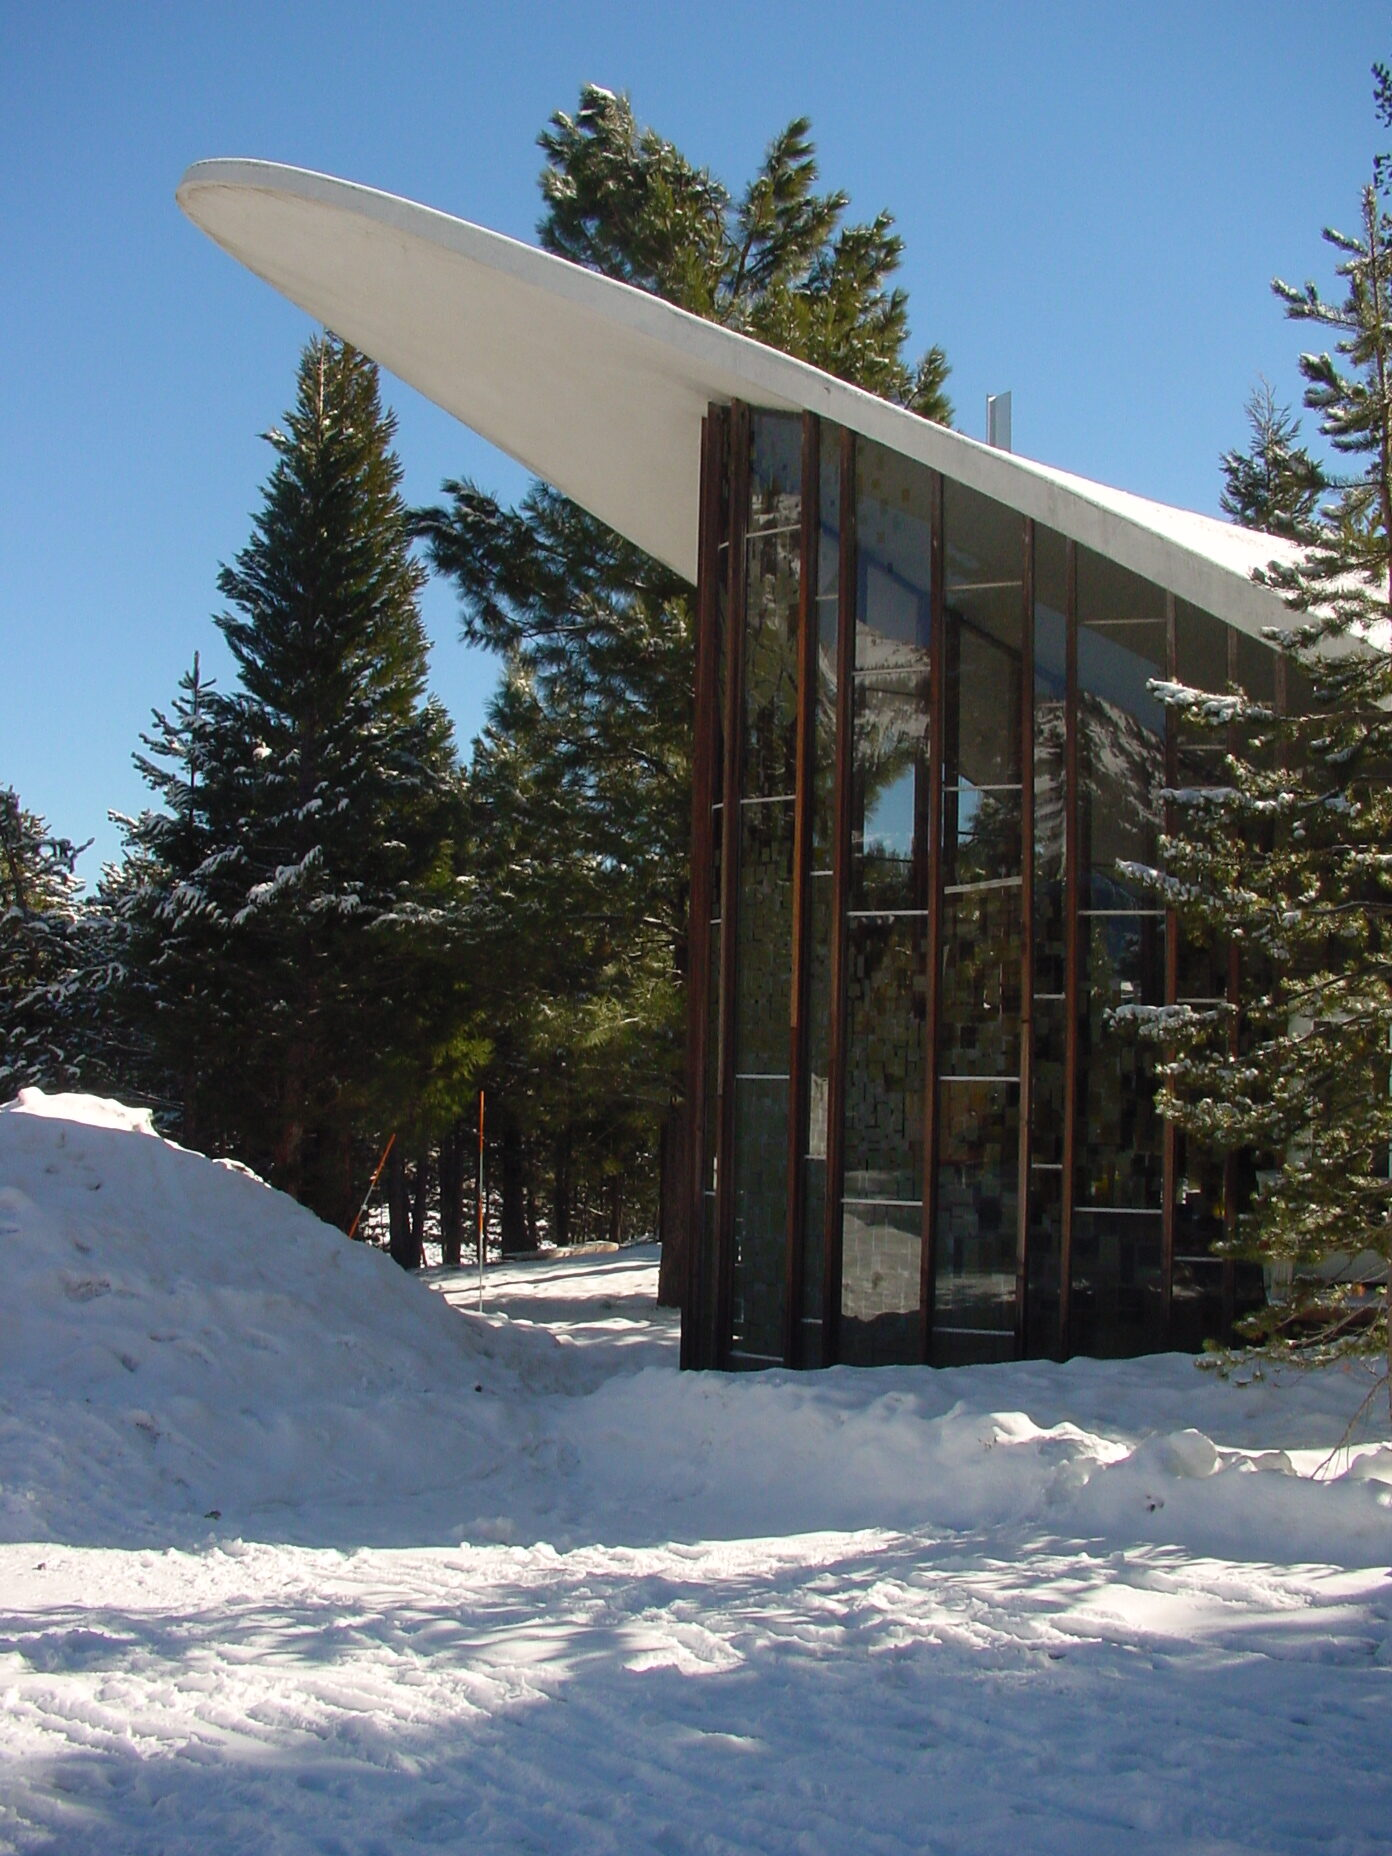 Squaw Valley Chapel